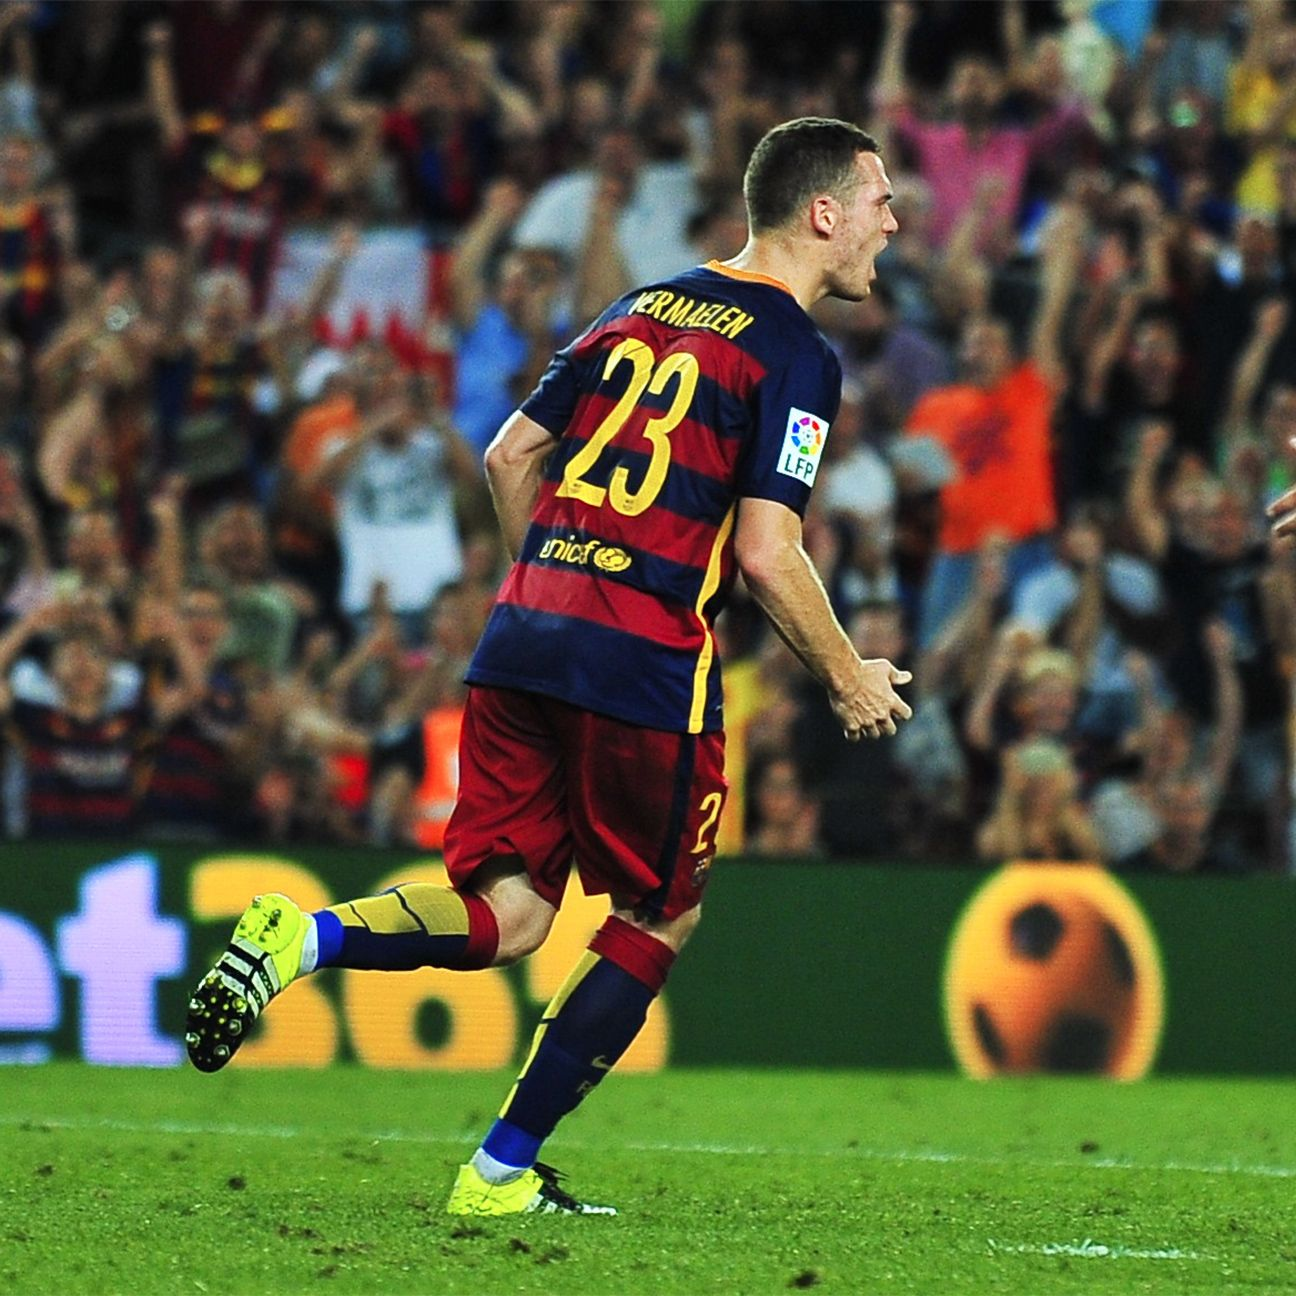 Thomas Vermaelen was an unlikely hero for Barcelona in their narrow win over Malaga.